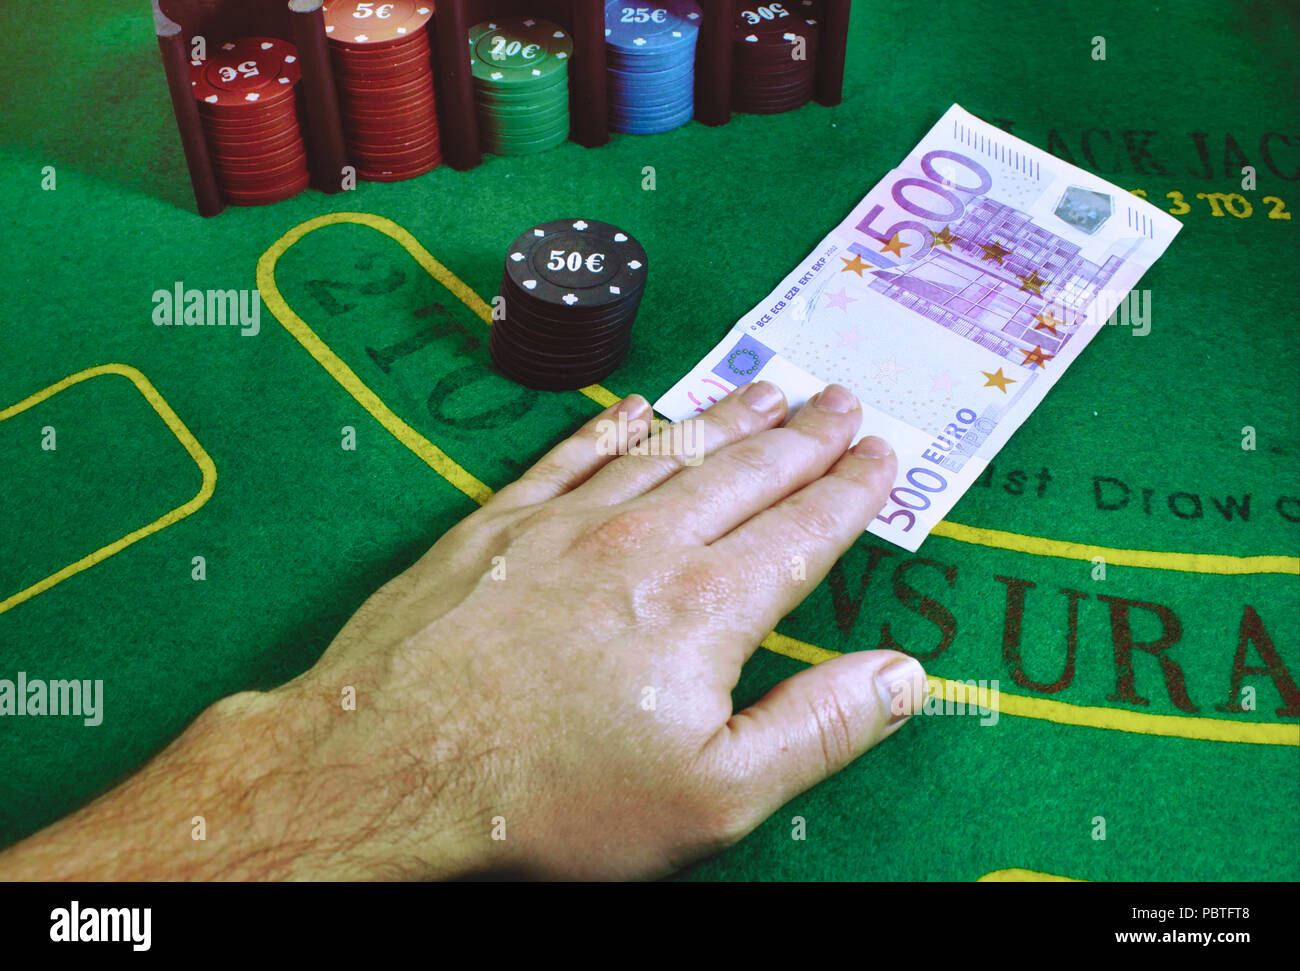 500 Euro note being exchanged for gaming chips on a green felt Blackjack table at the casino - Stock Image